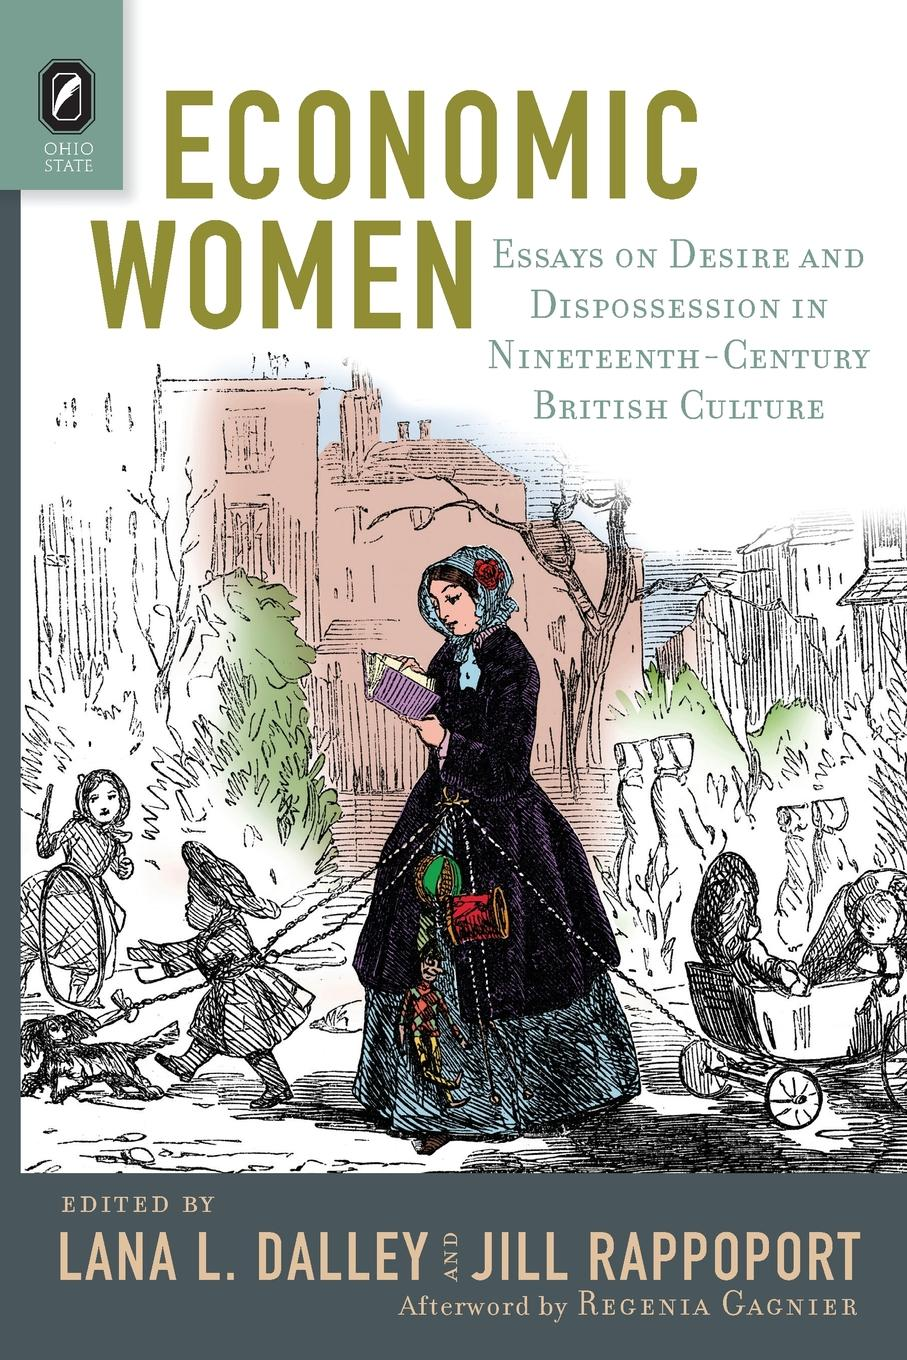 Economic Women. Essays on Desire and Dispossession in Nineteenth-Century British Culture vishaal kishore ricardo s gauntlet economic fiction and the flawed case for free trade